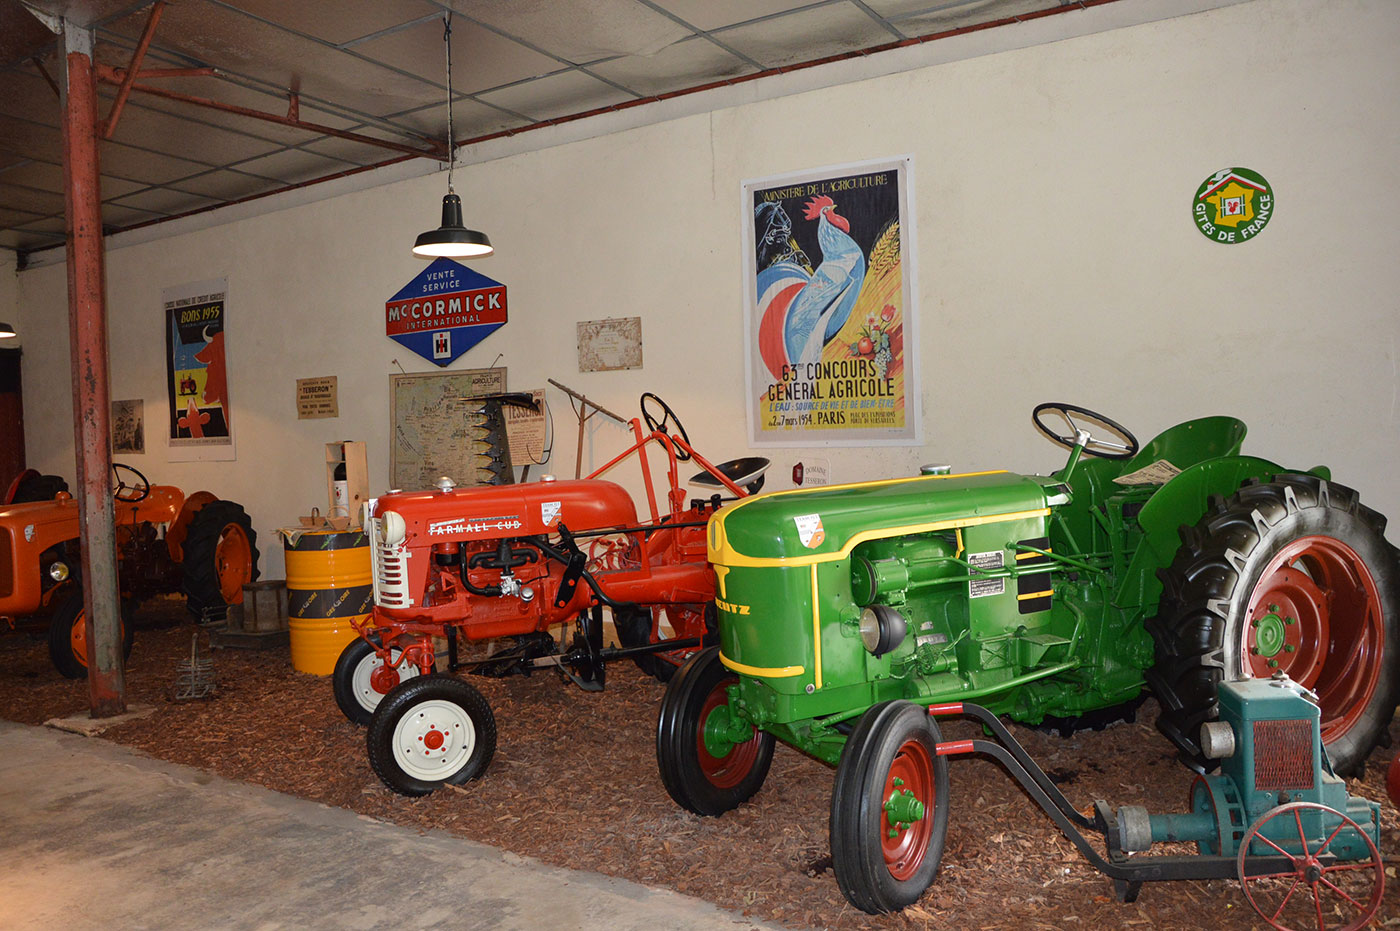 Old tractors at the Ecomuseum of Cognac